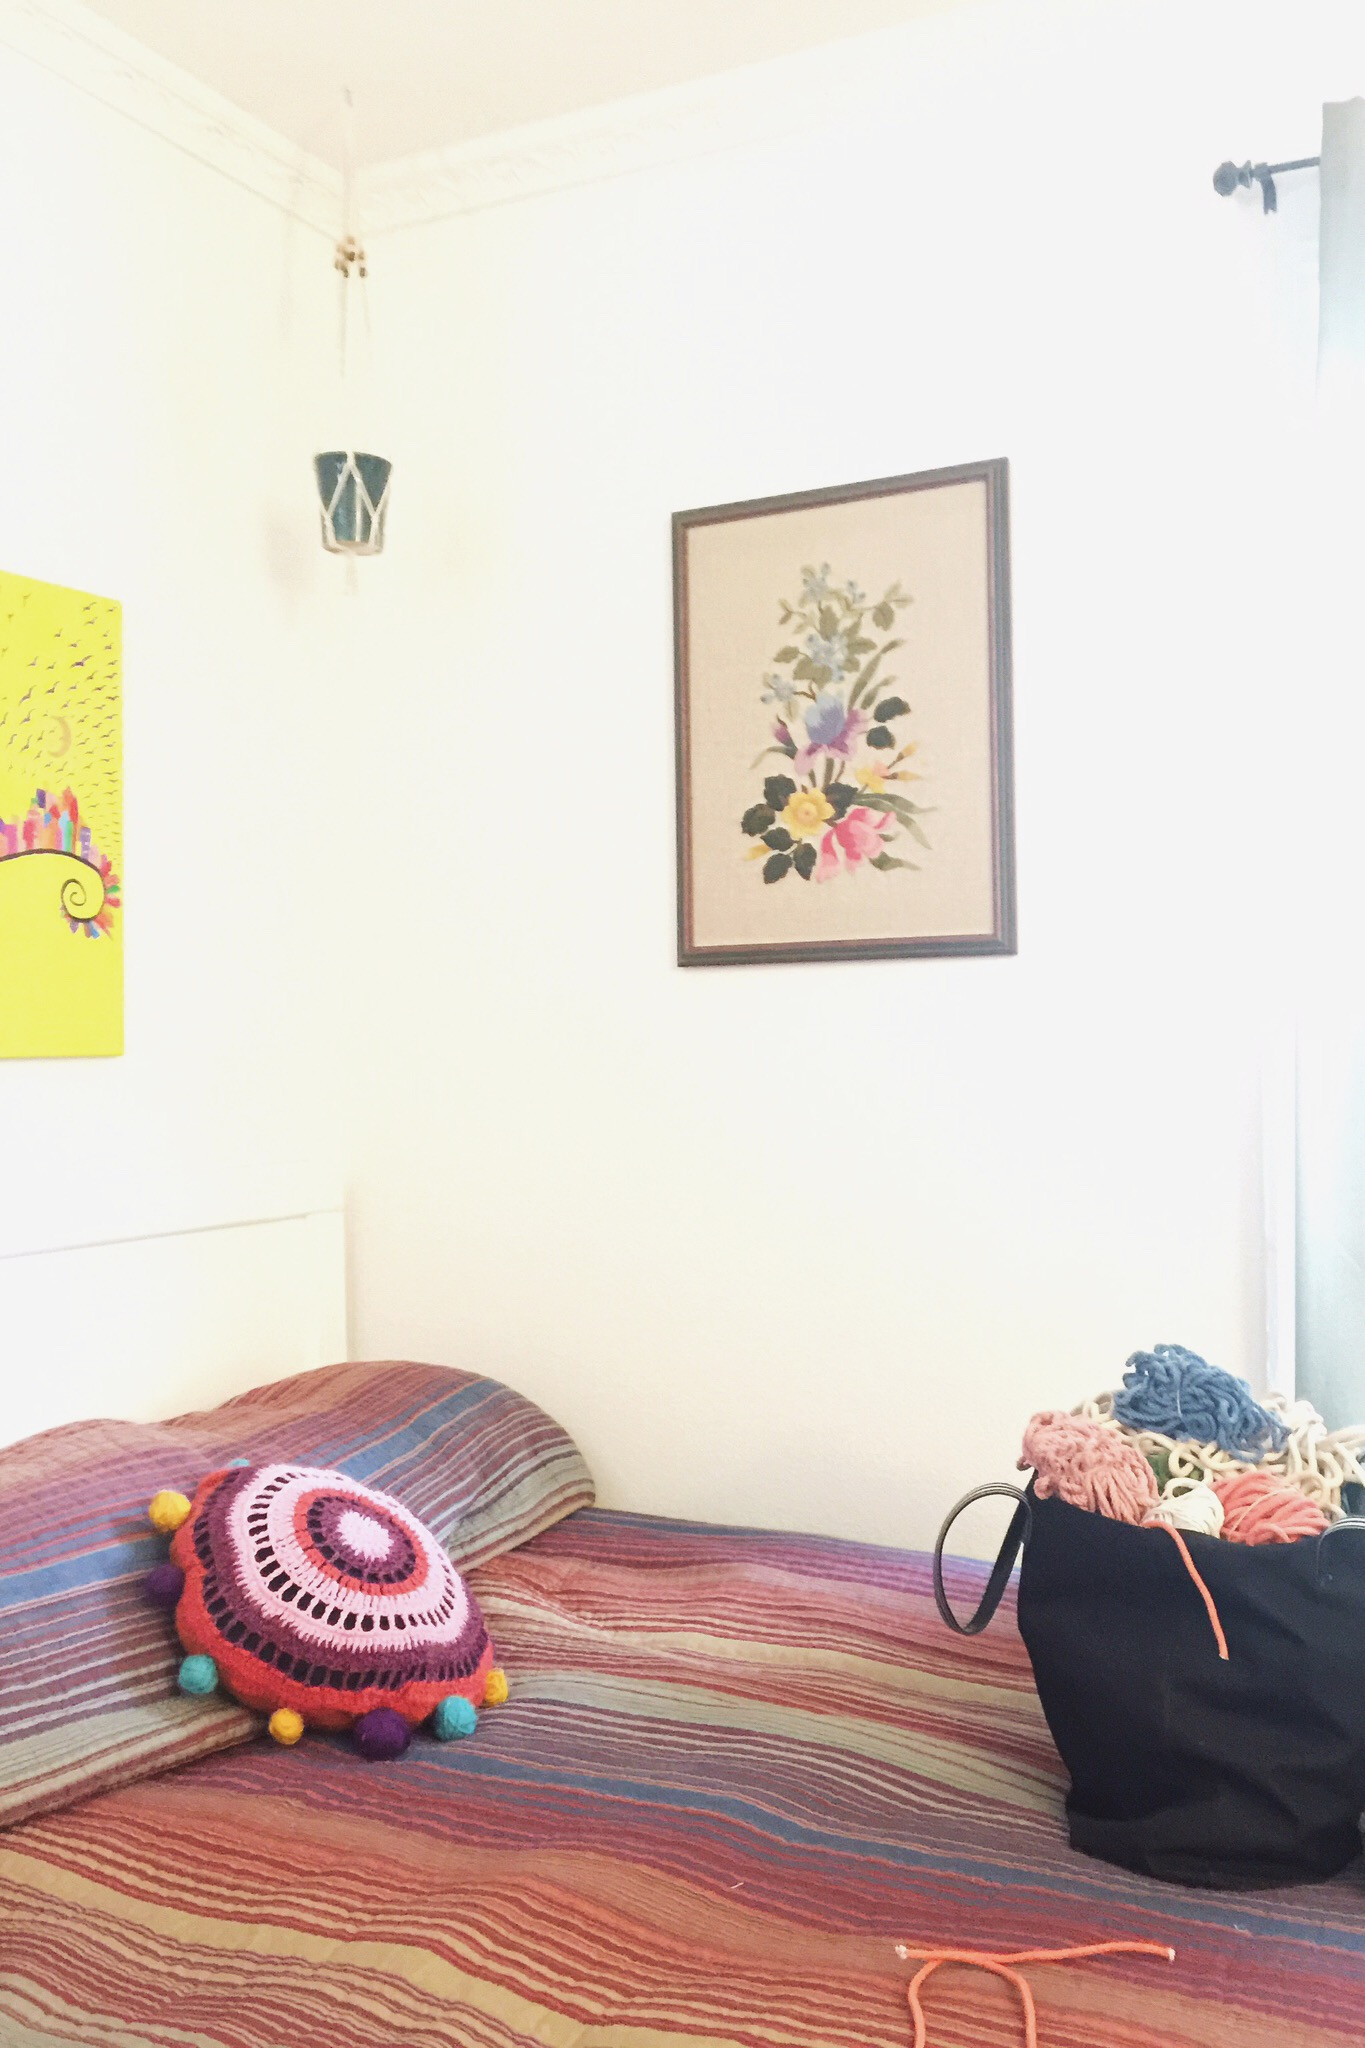 Gypsy Walls: Macrame plant holders, embroidered pillows, and yarn-stuffed sacks.  I started making things again when Jimmy was a baby in 2013, mostly crocheting.